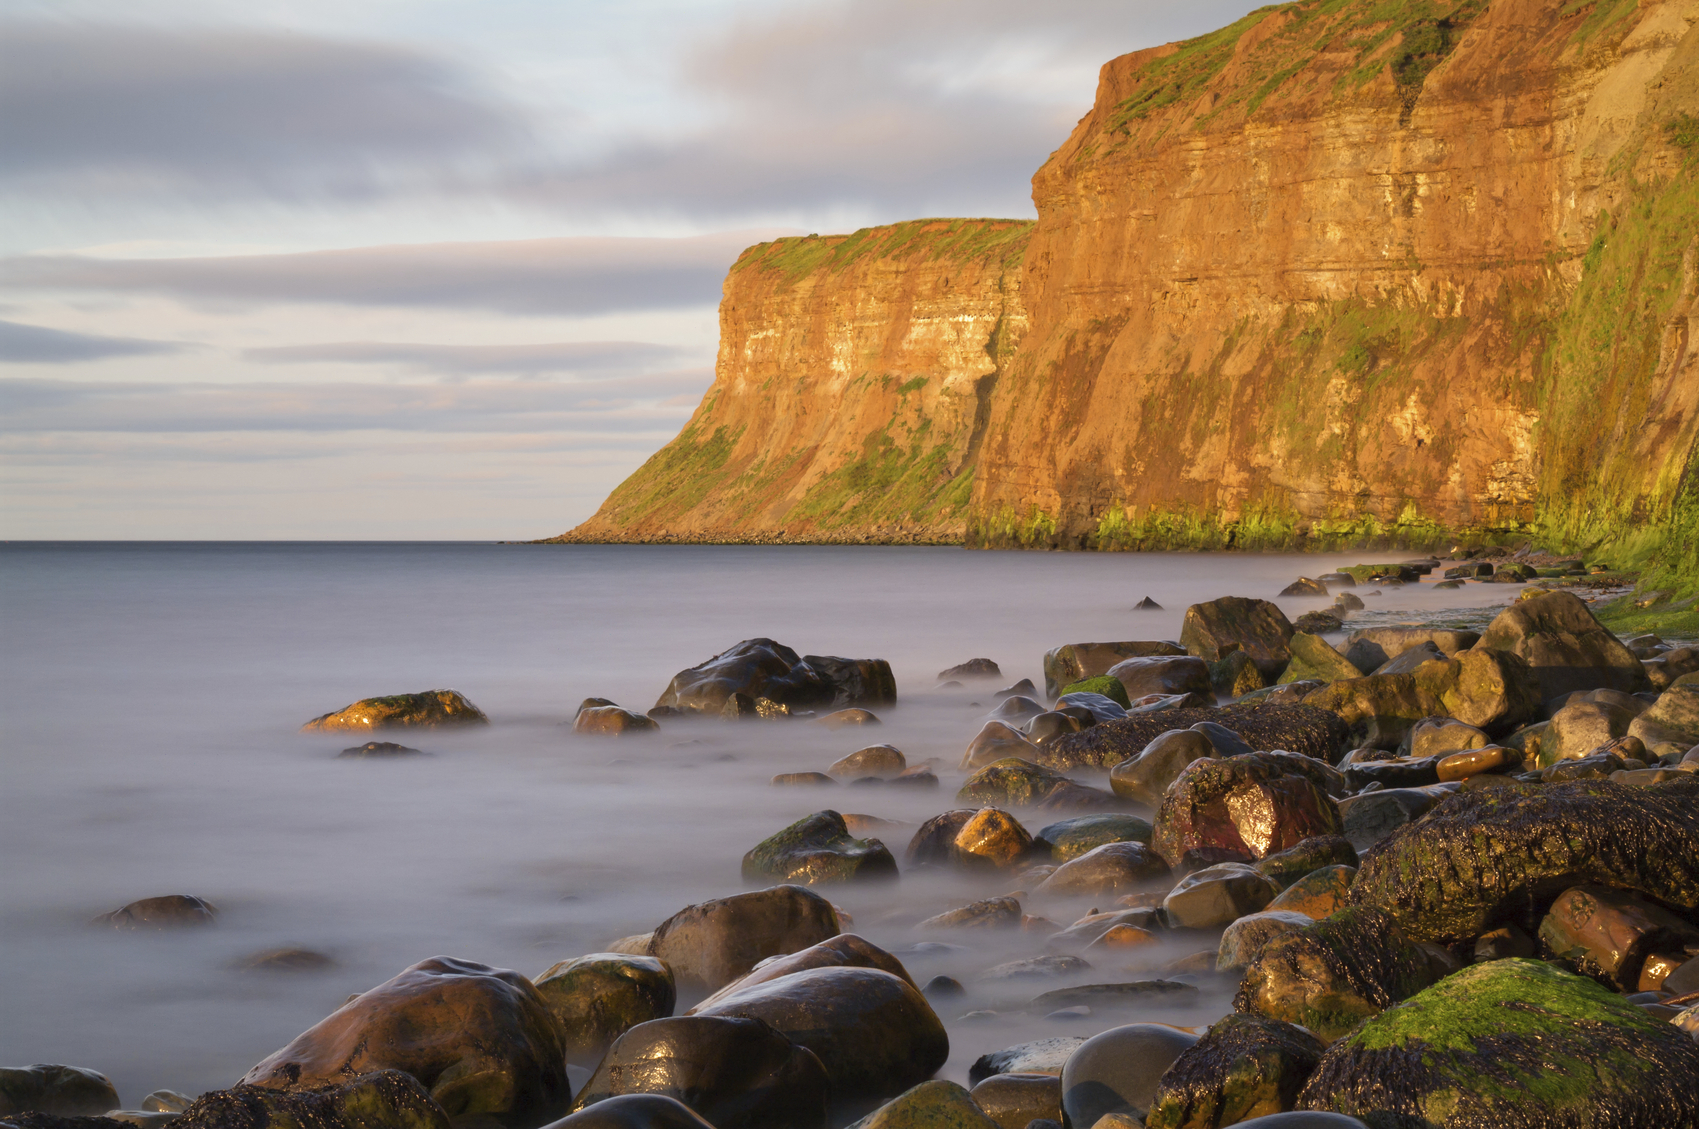 Hunt Cliff or Huntcliff at Saltburn by-the-sea.